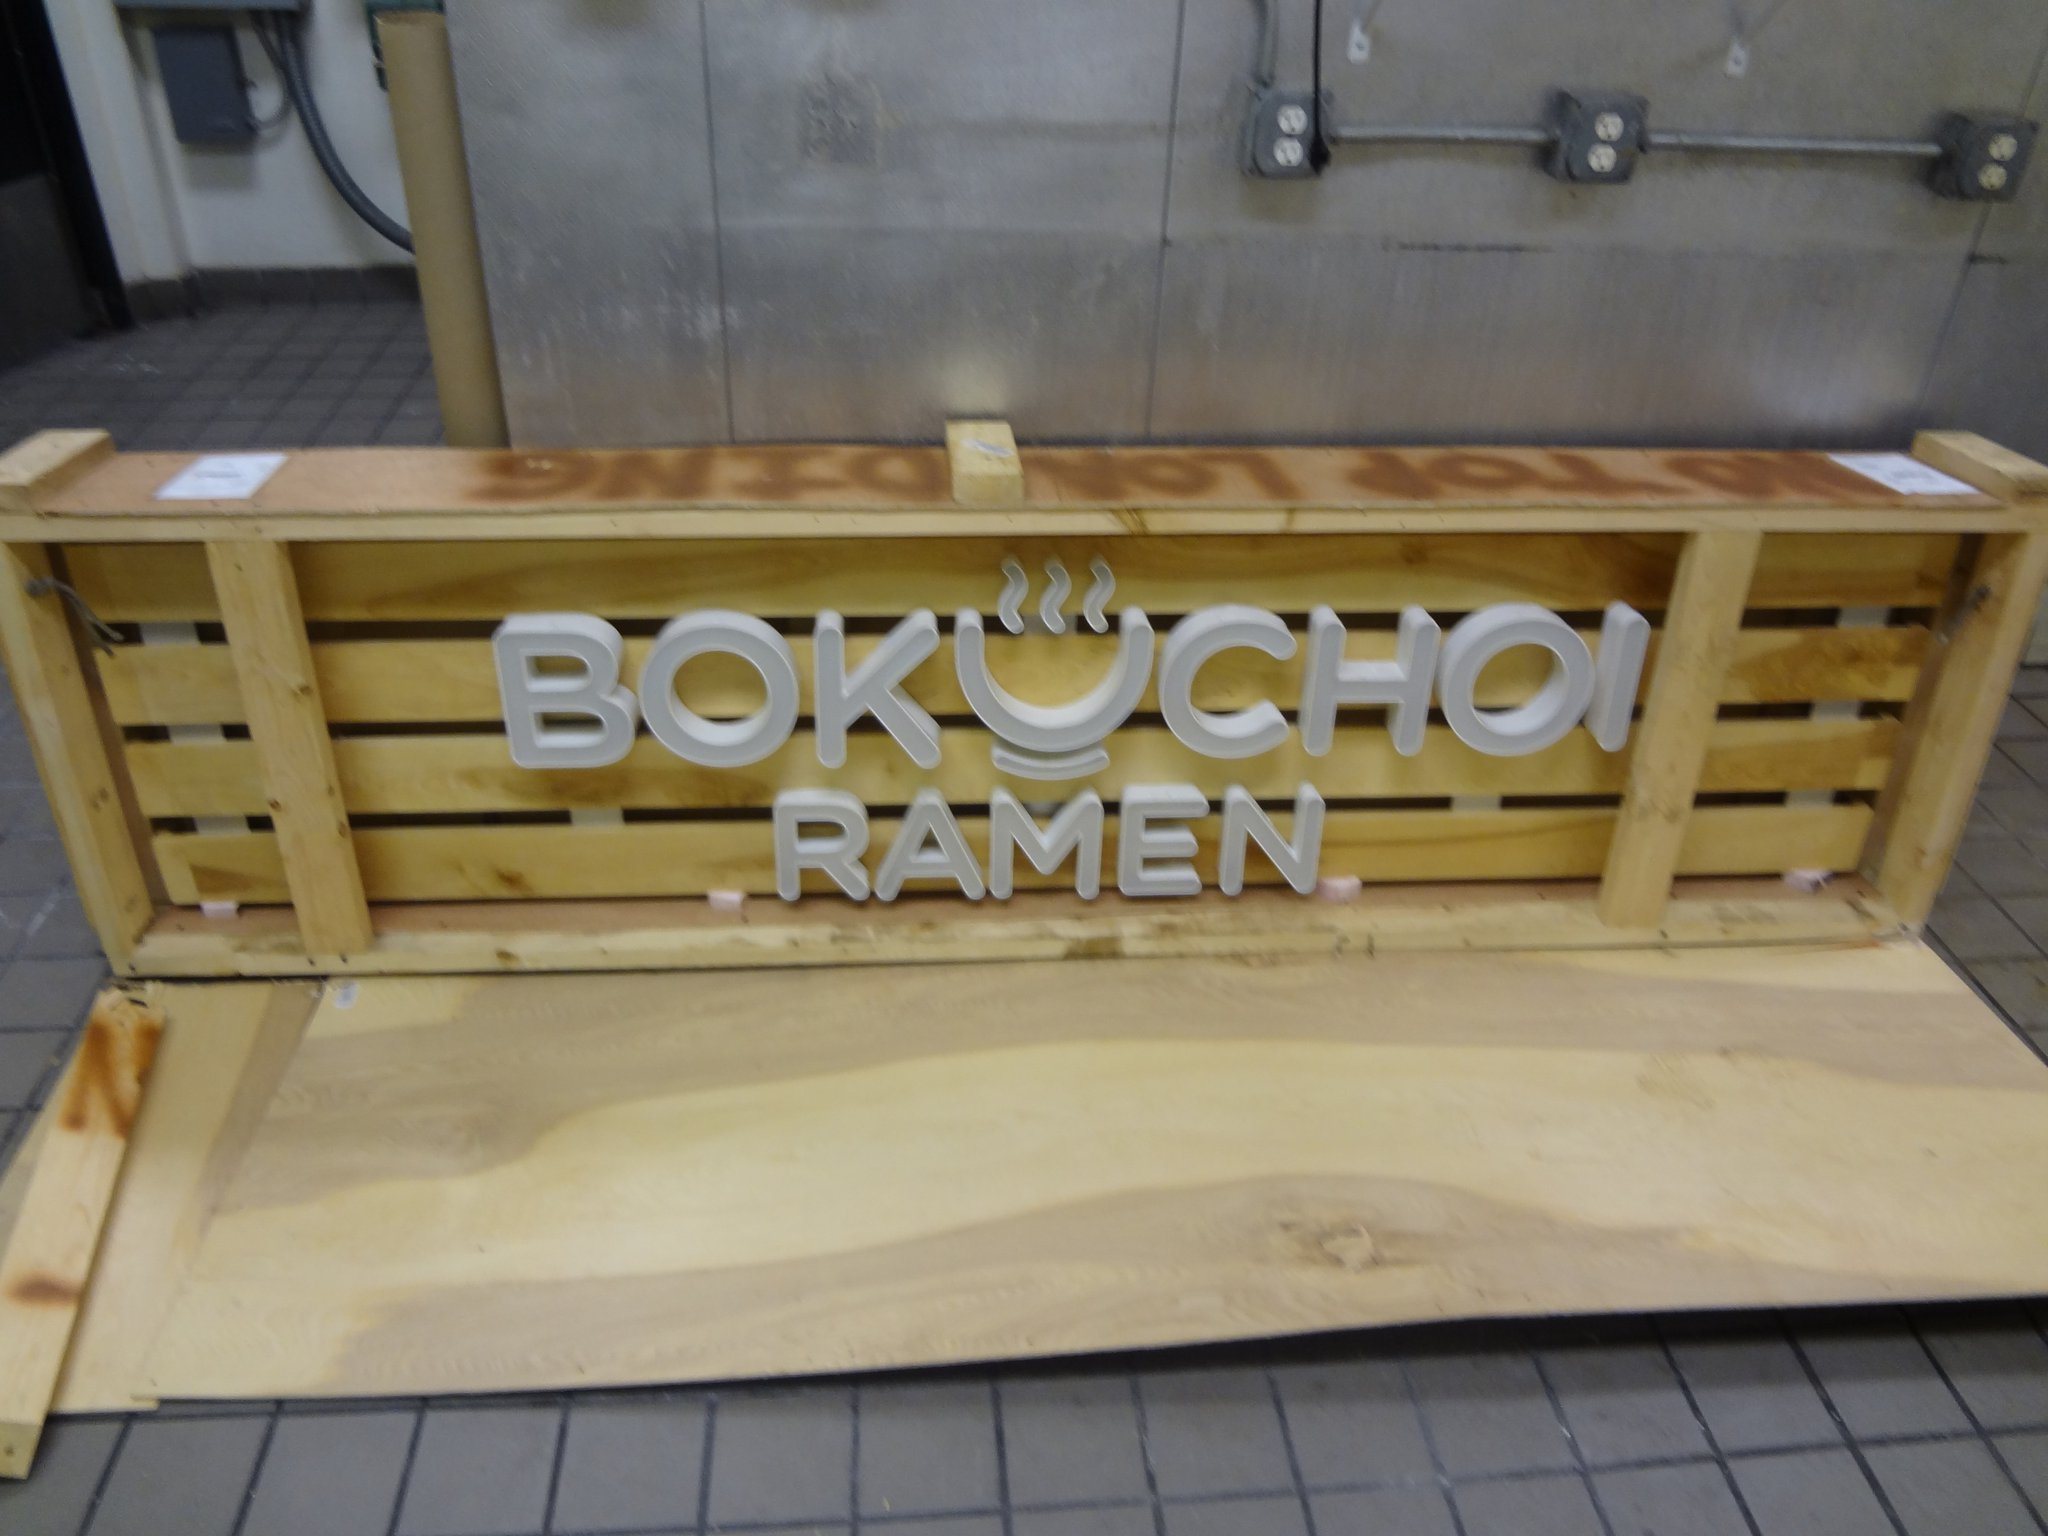 Bokuchoi Ramen launched – first Japanese ramen restaurant in Tampa Bay